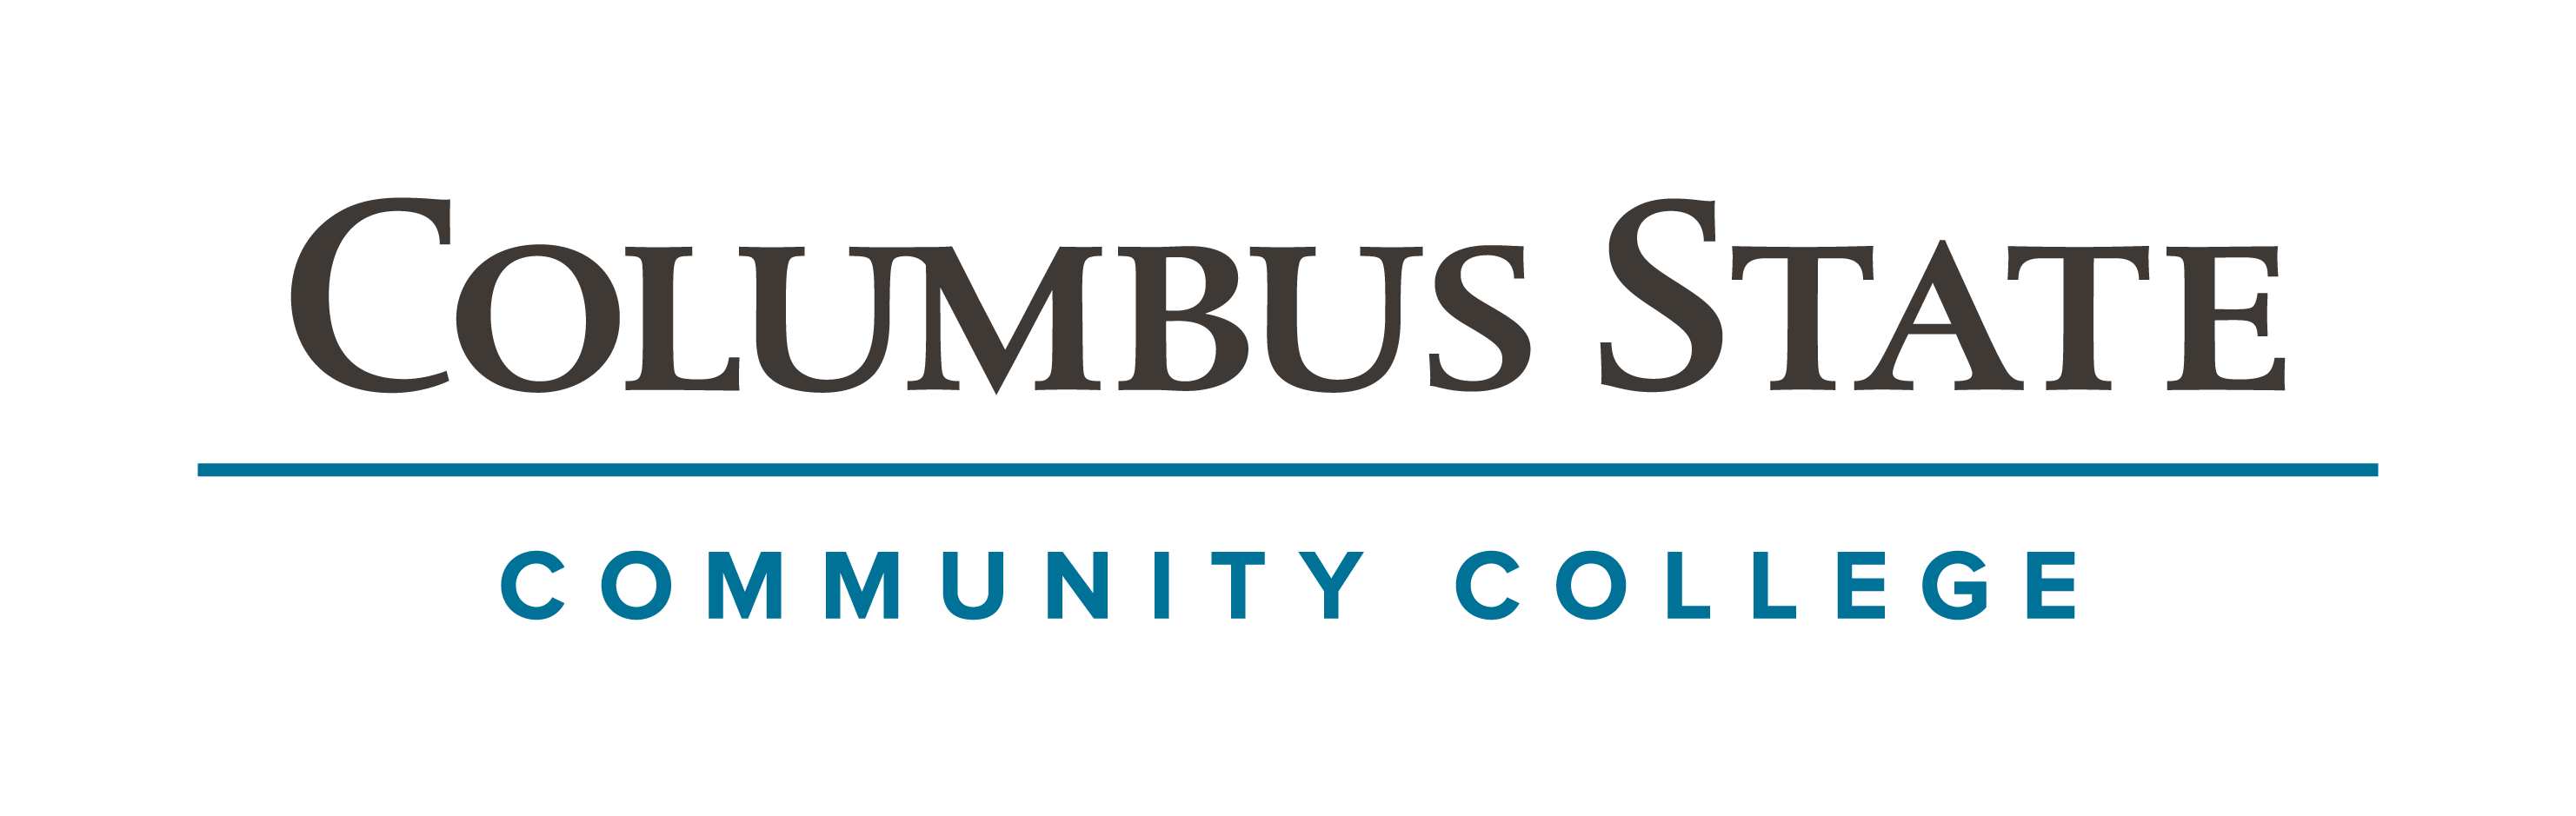 Request For Qualifications for Development Partner for Columbus State Community Partners